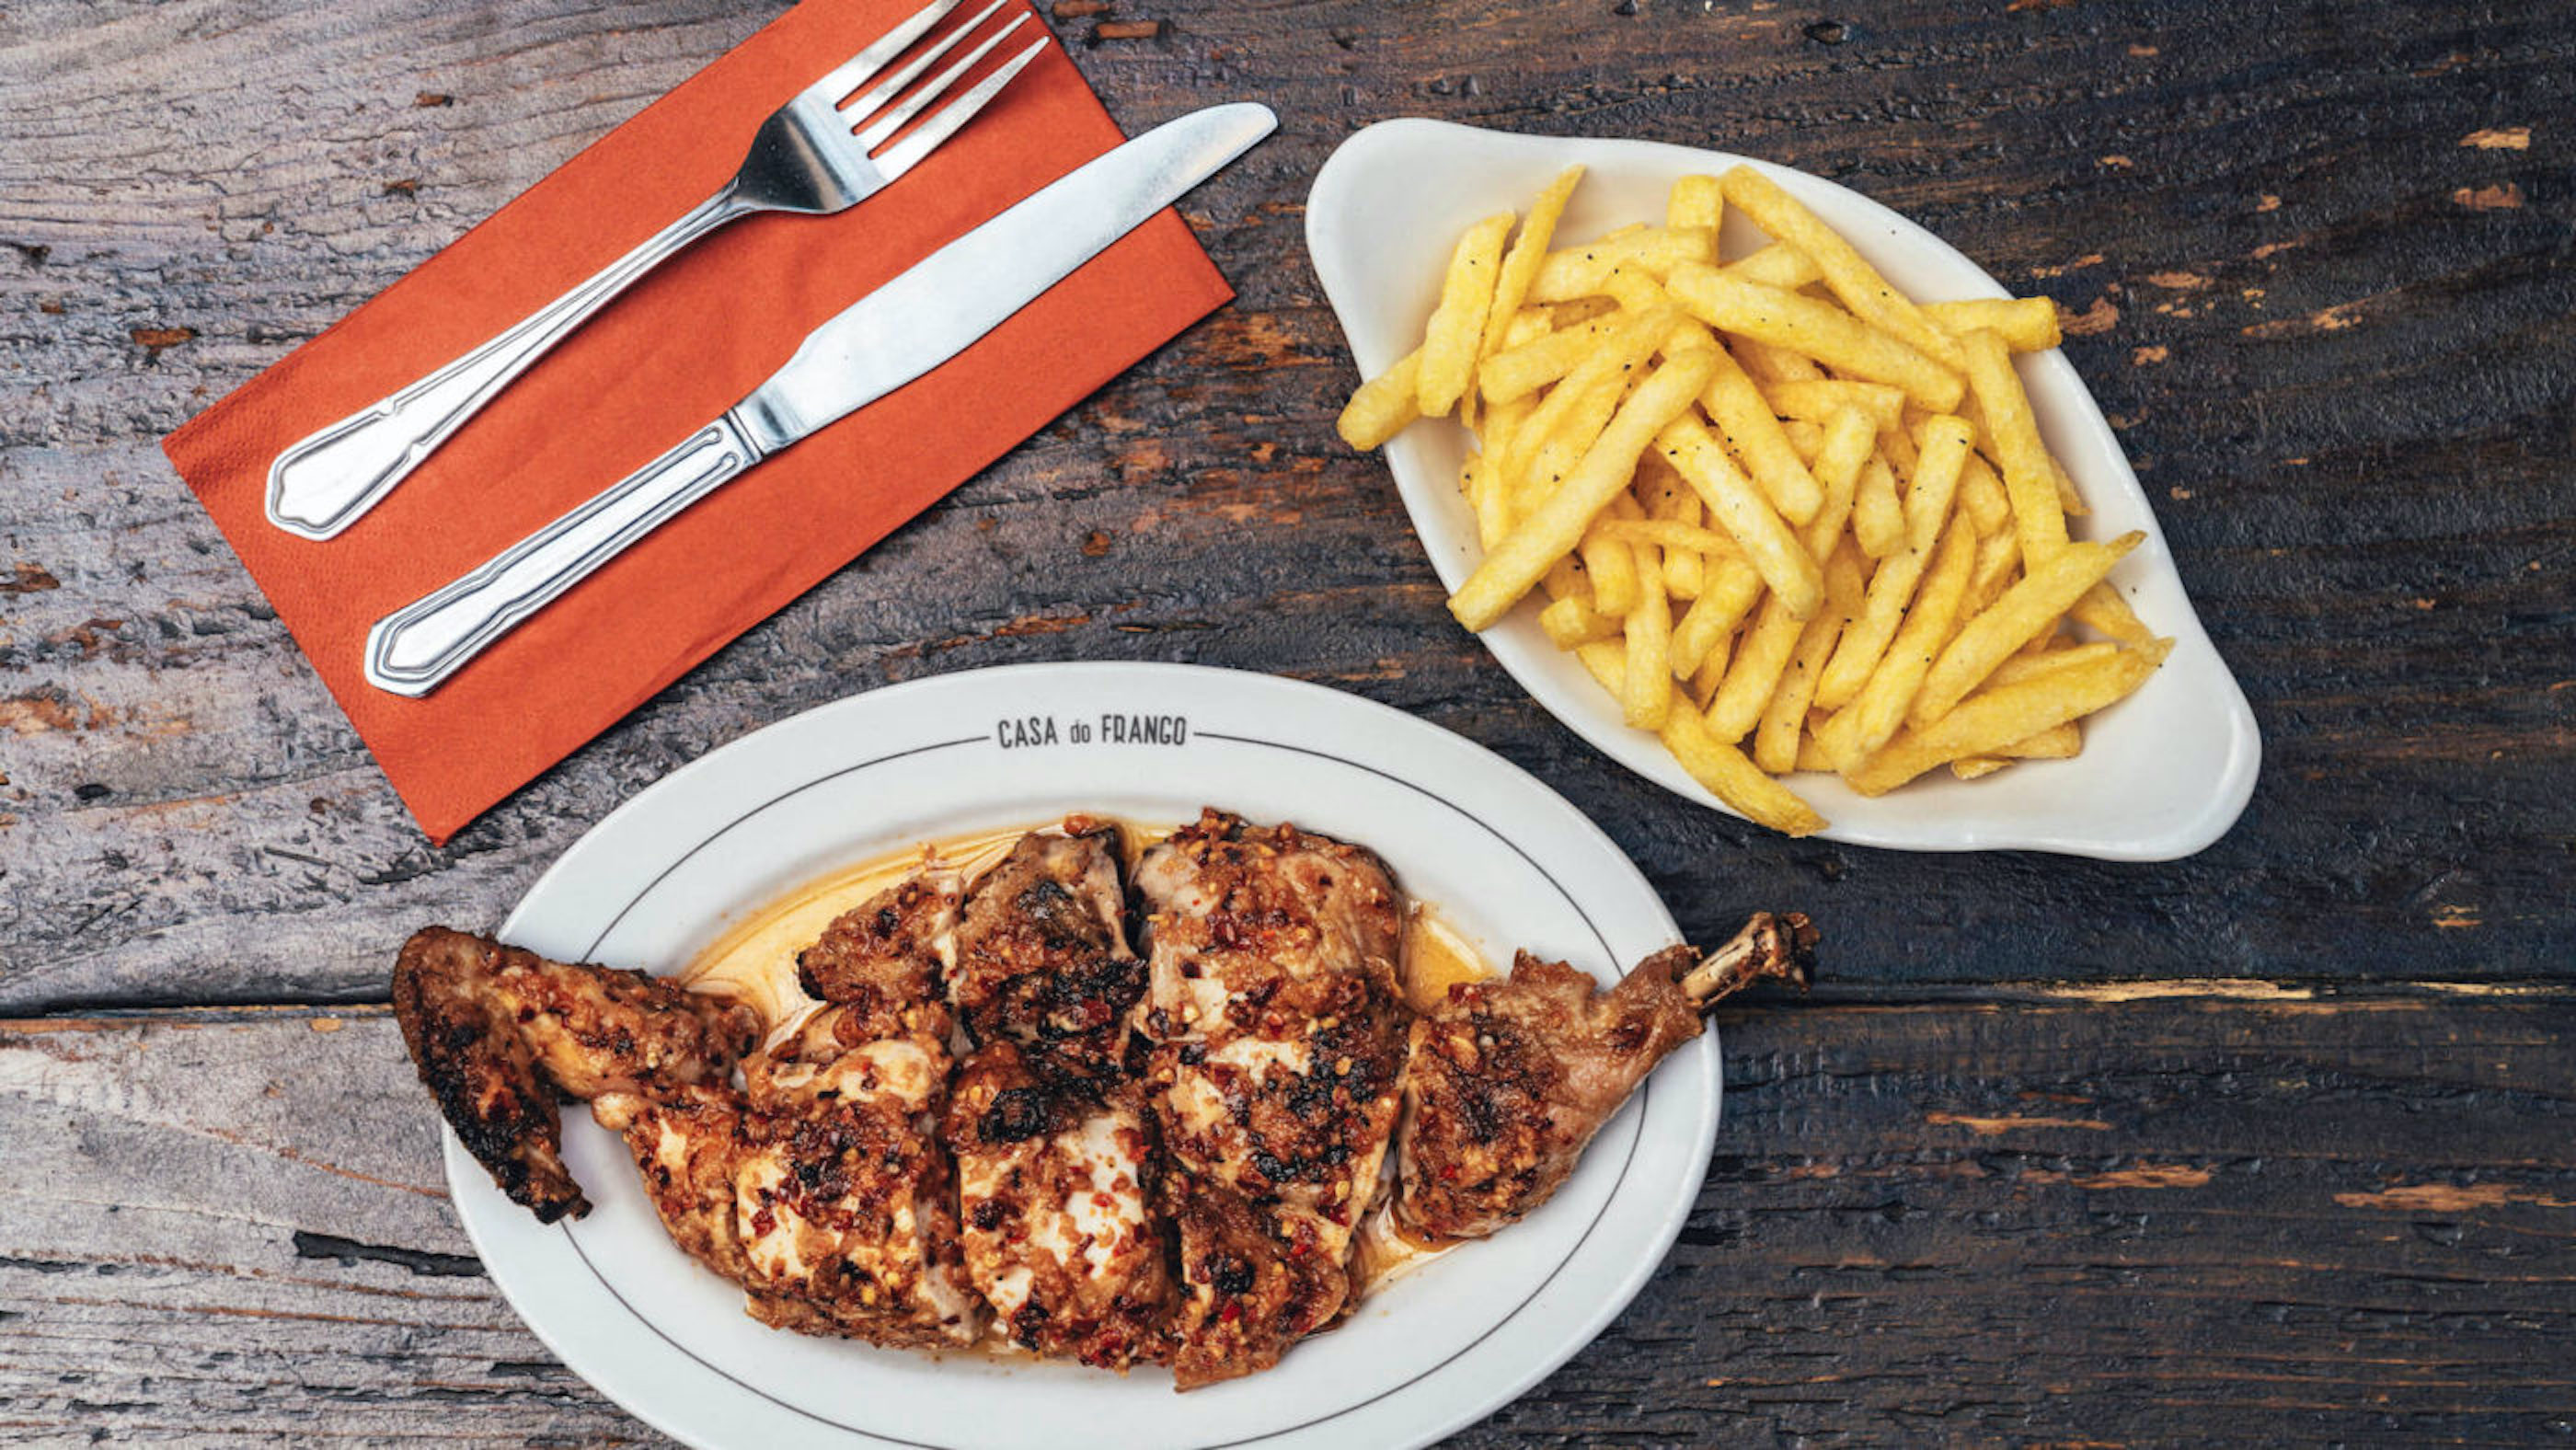 Piri piri chicken on a white platter with chips on a white platter, with cutlery on a red napkin